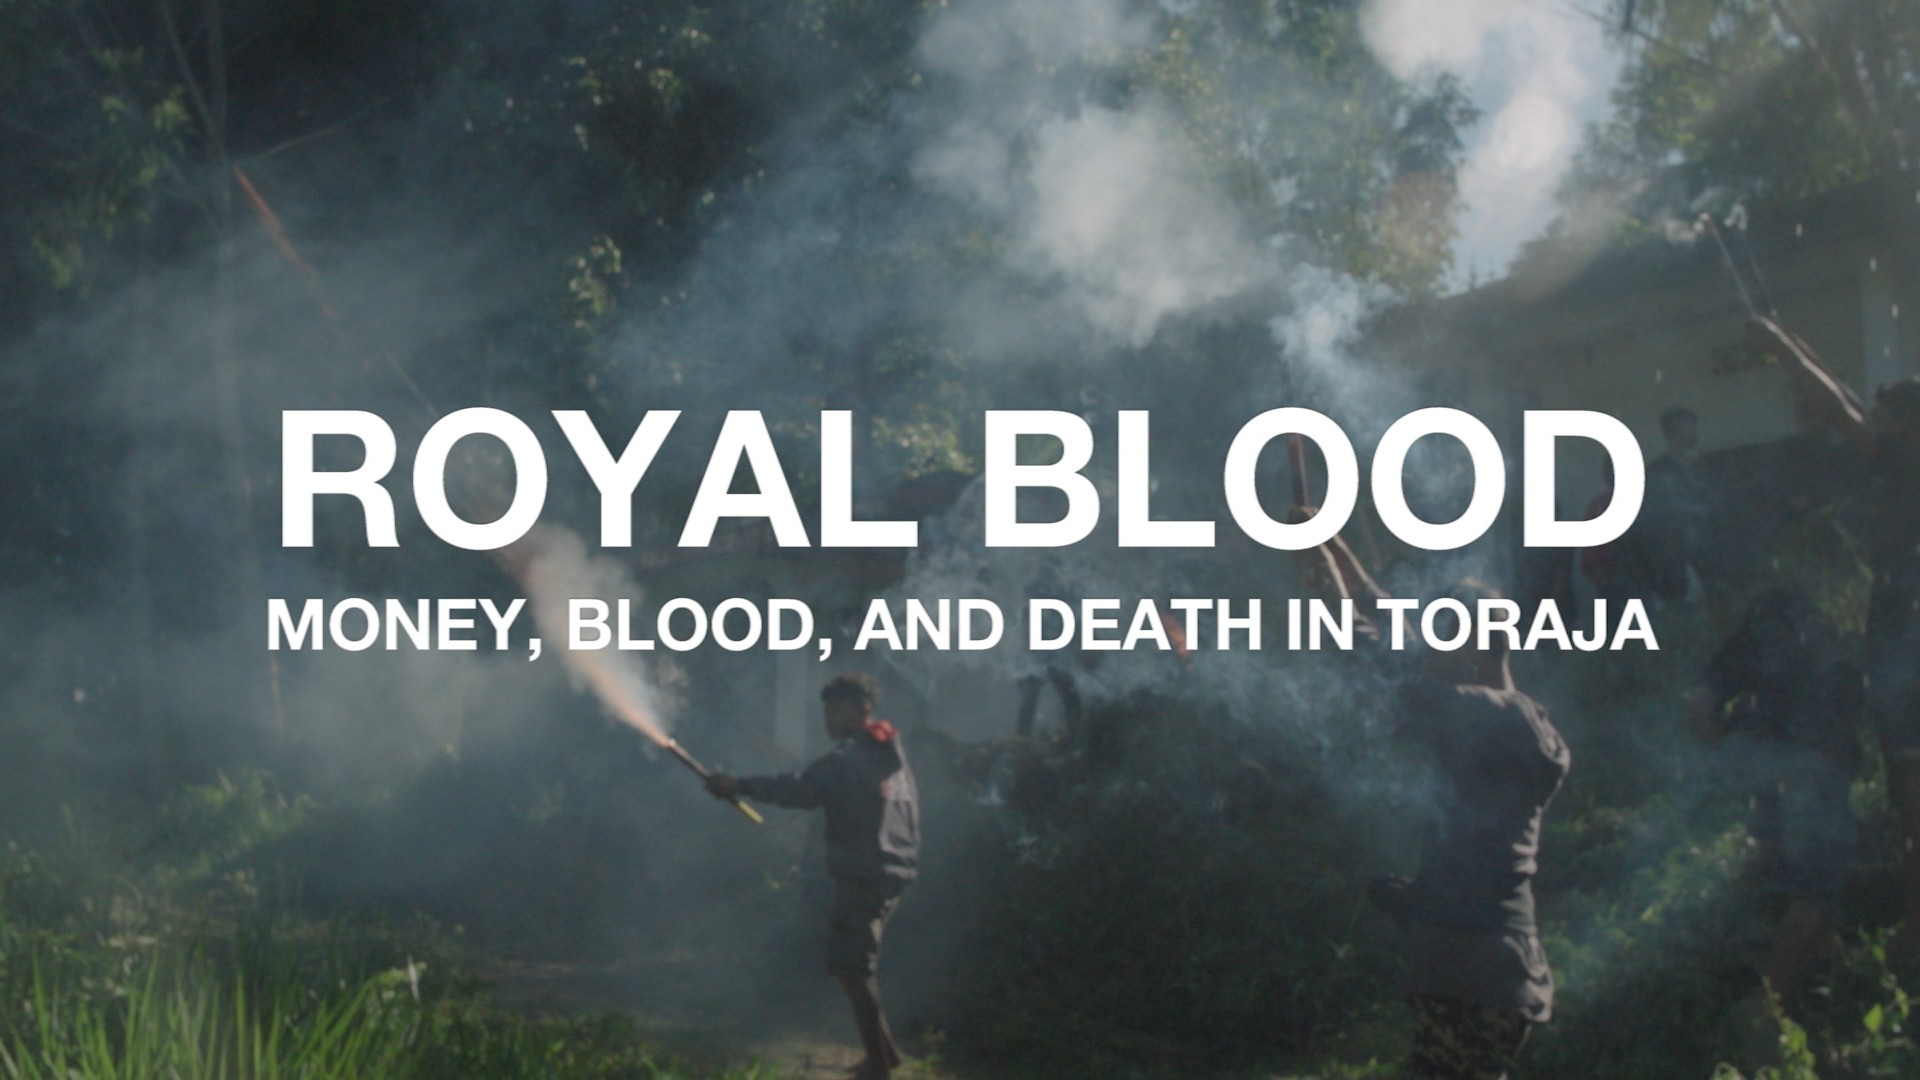 Royal Blood: Inside Indonesia's Lavish, Bloody Funeral Ceremonies